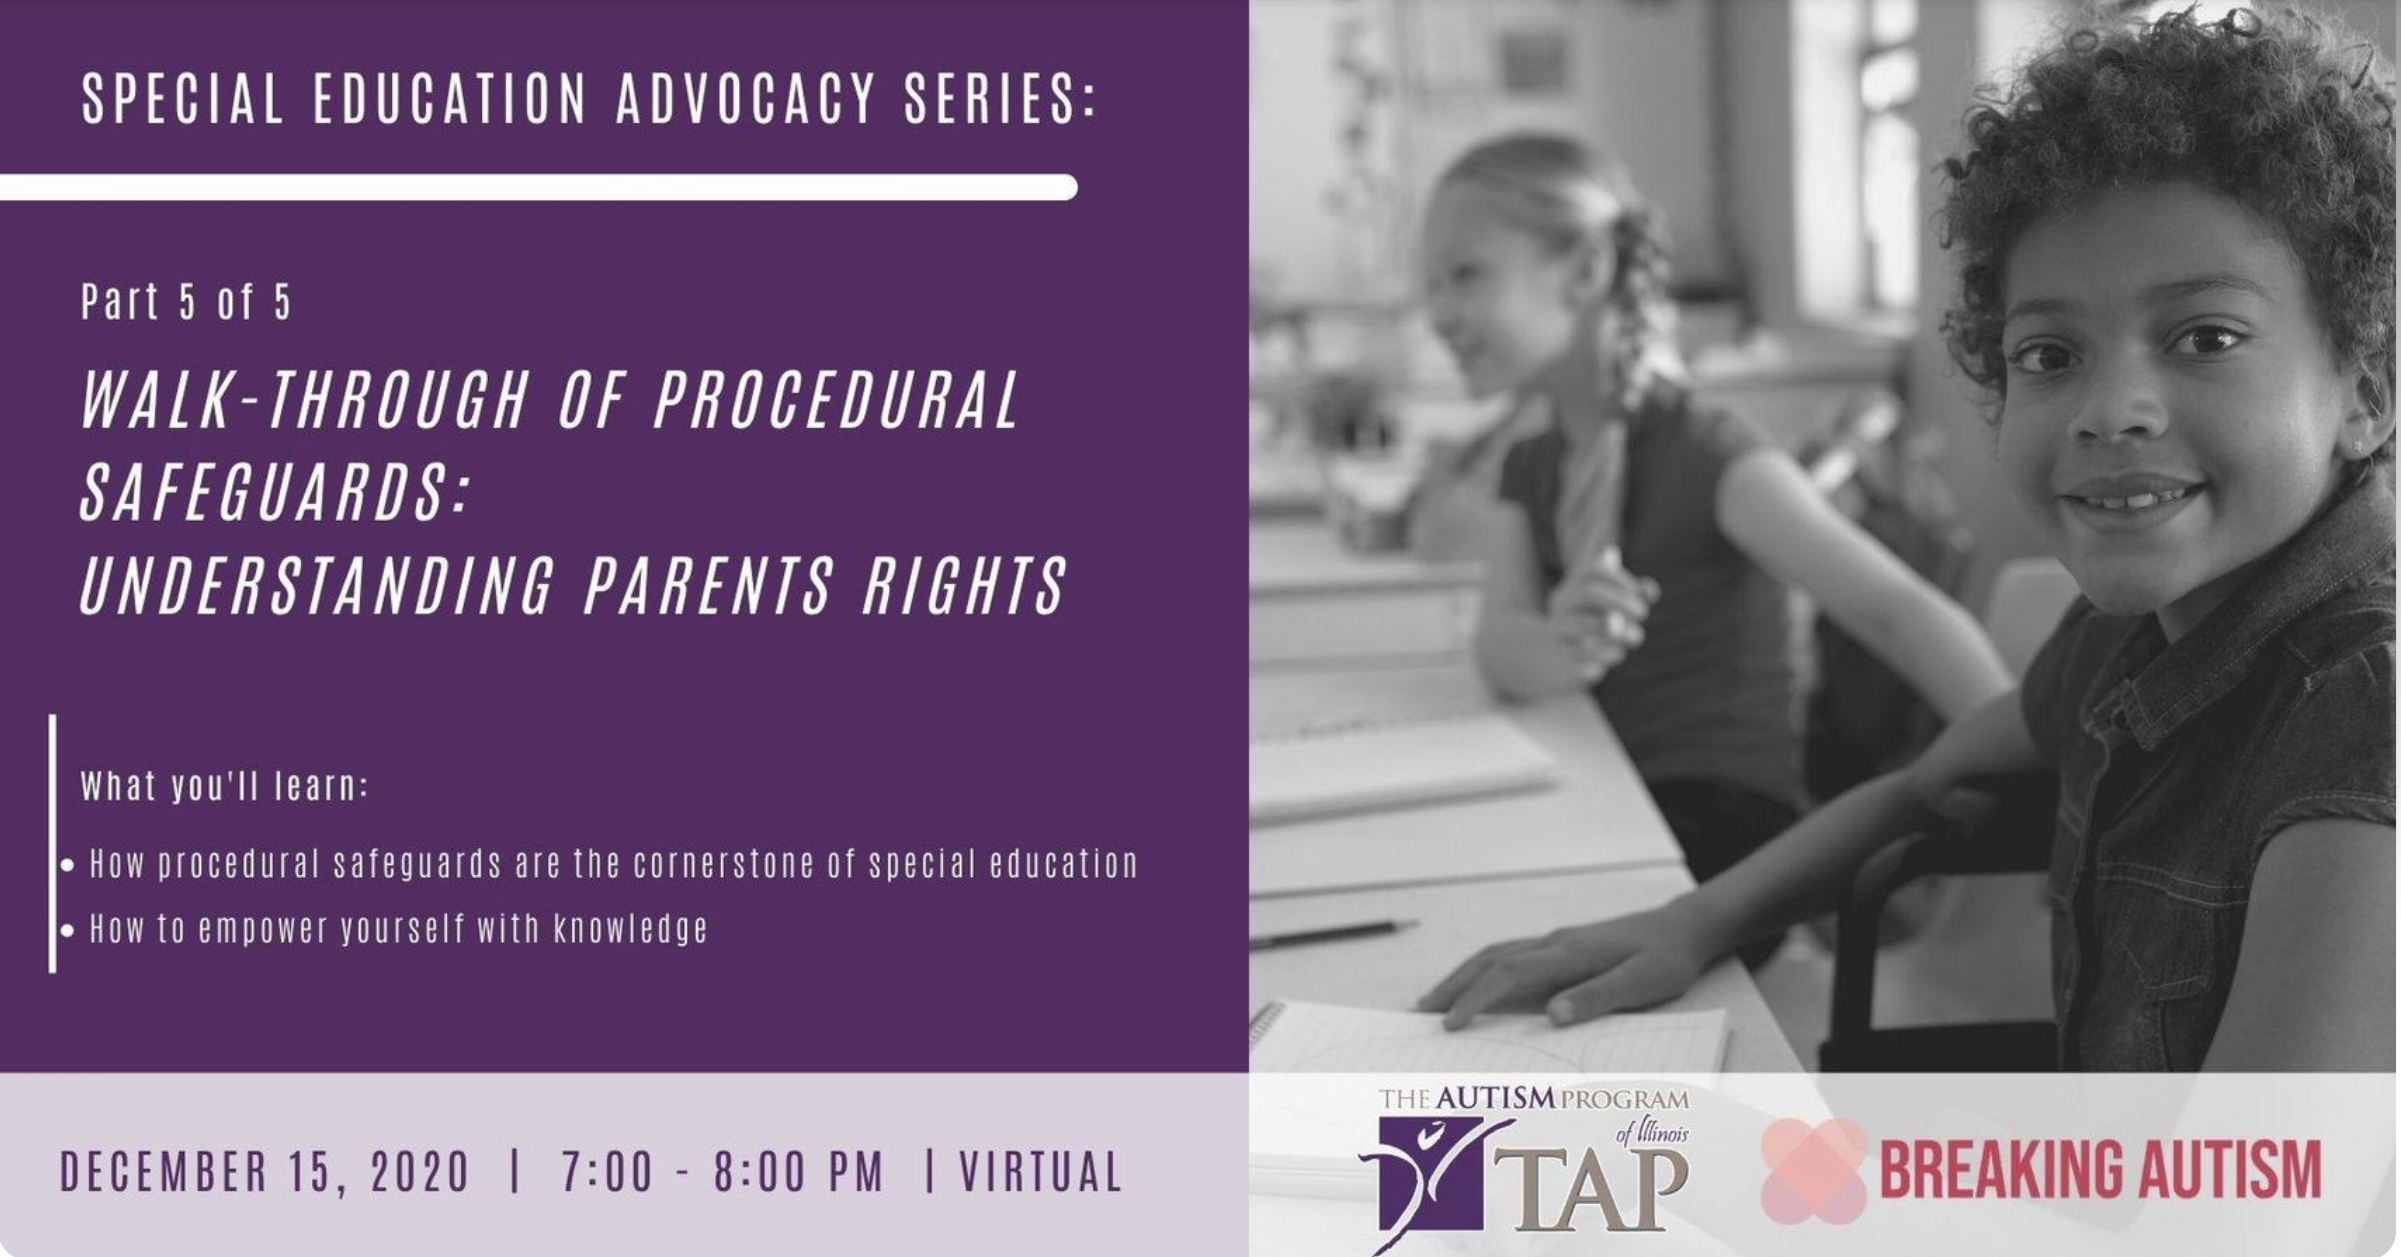 Walk-through of Procedural Safeguards: Understanding Parents Rights